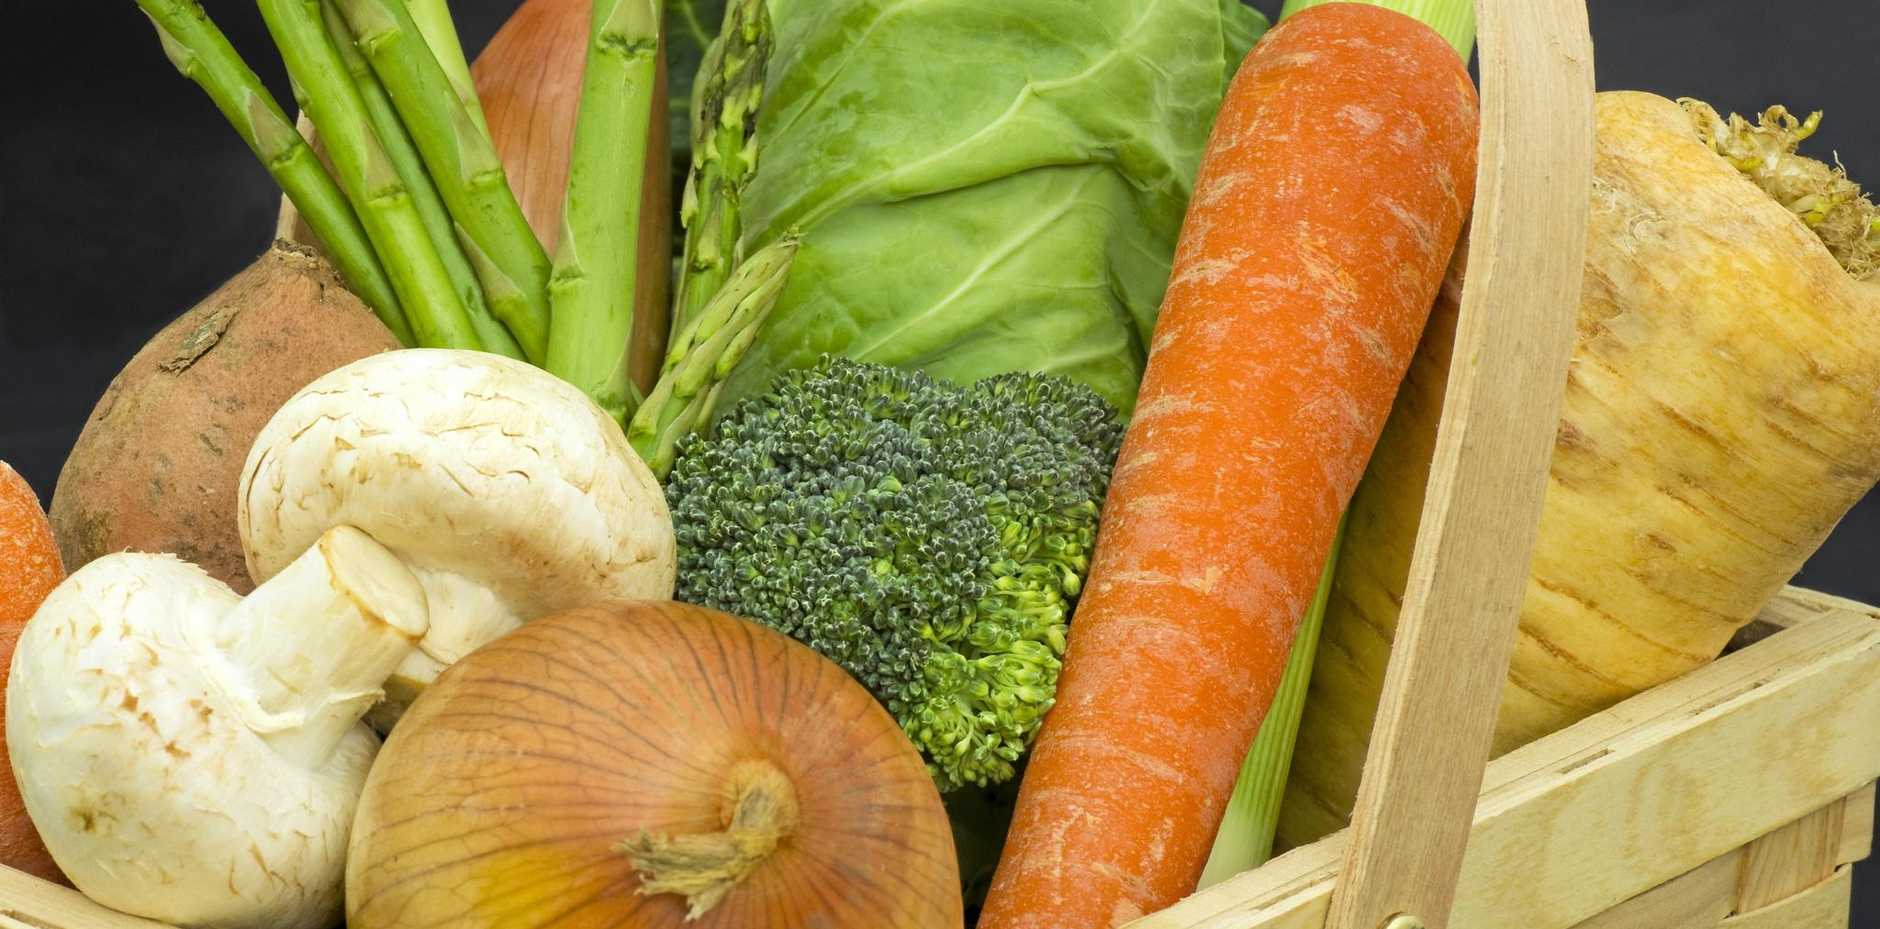 A wooden trug of freshly harvested vegetables, promoting healthy eating and living.